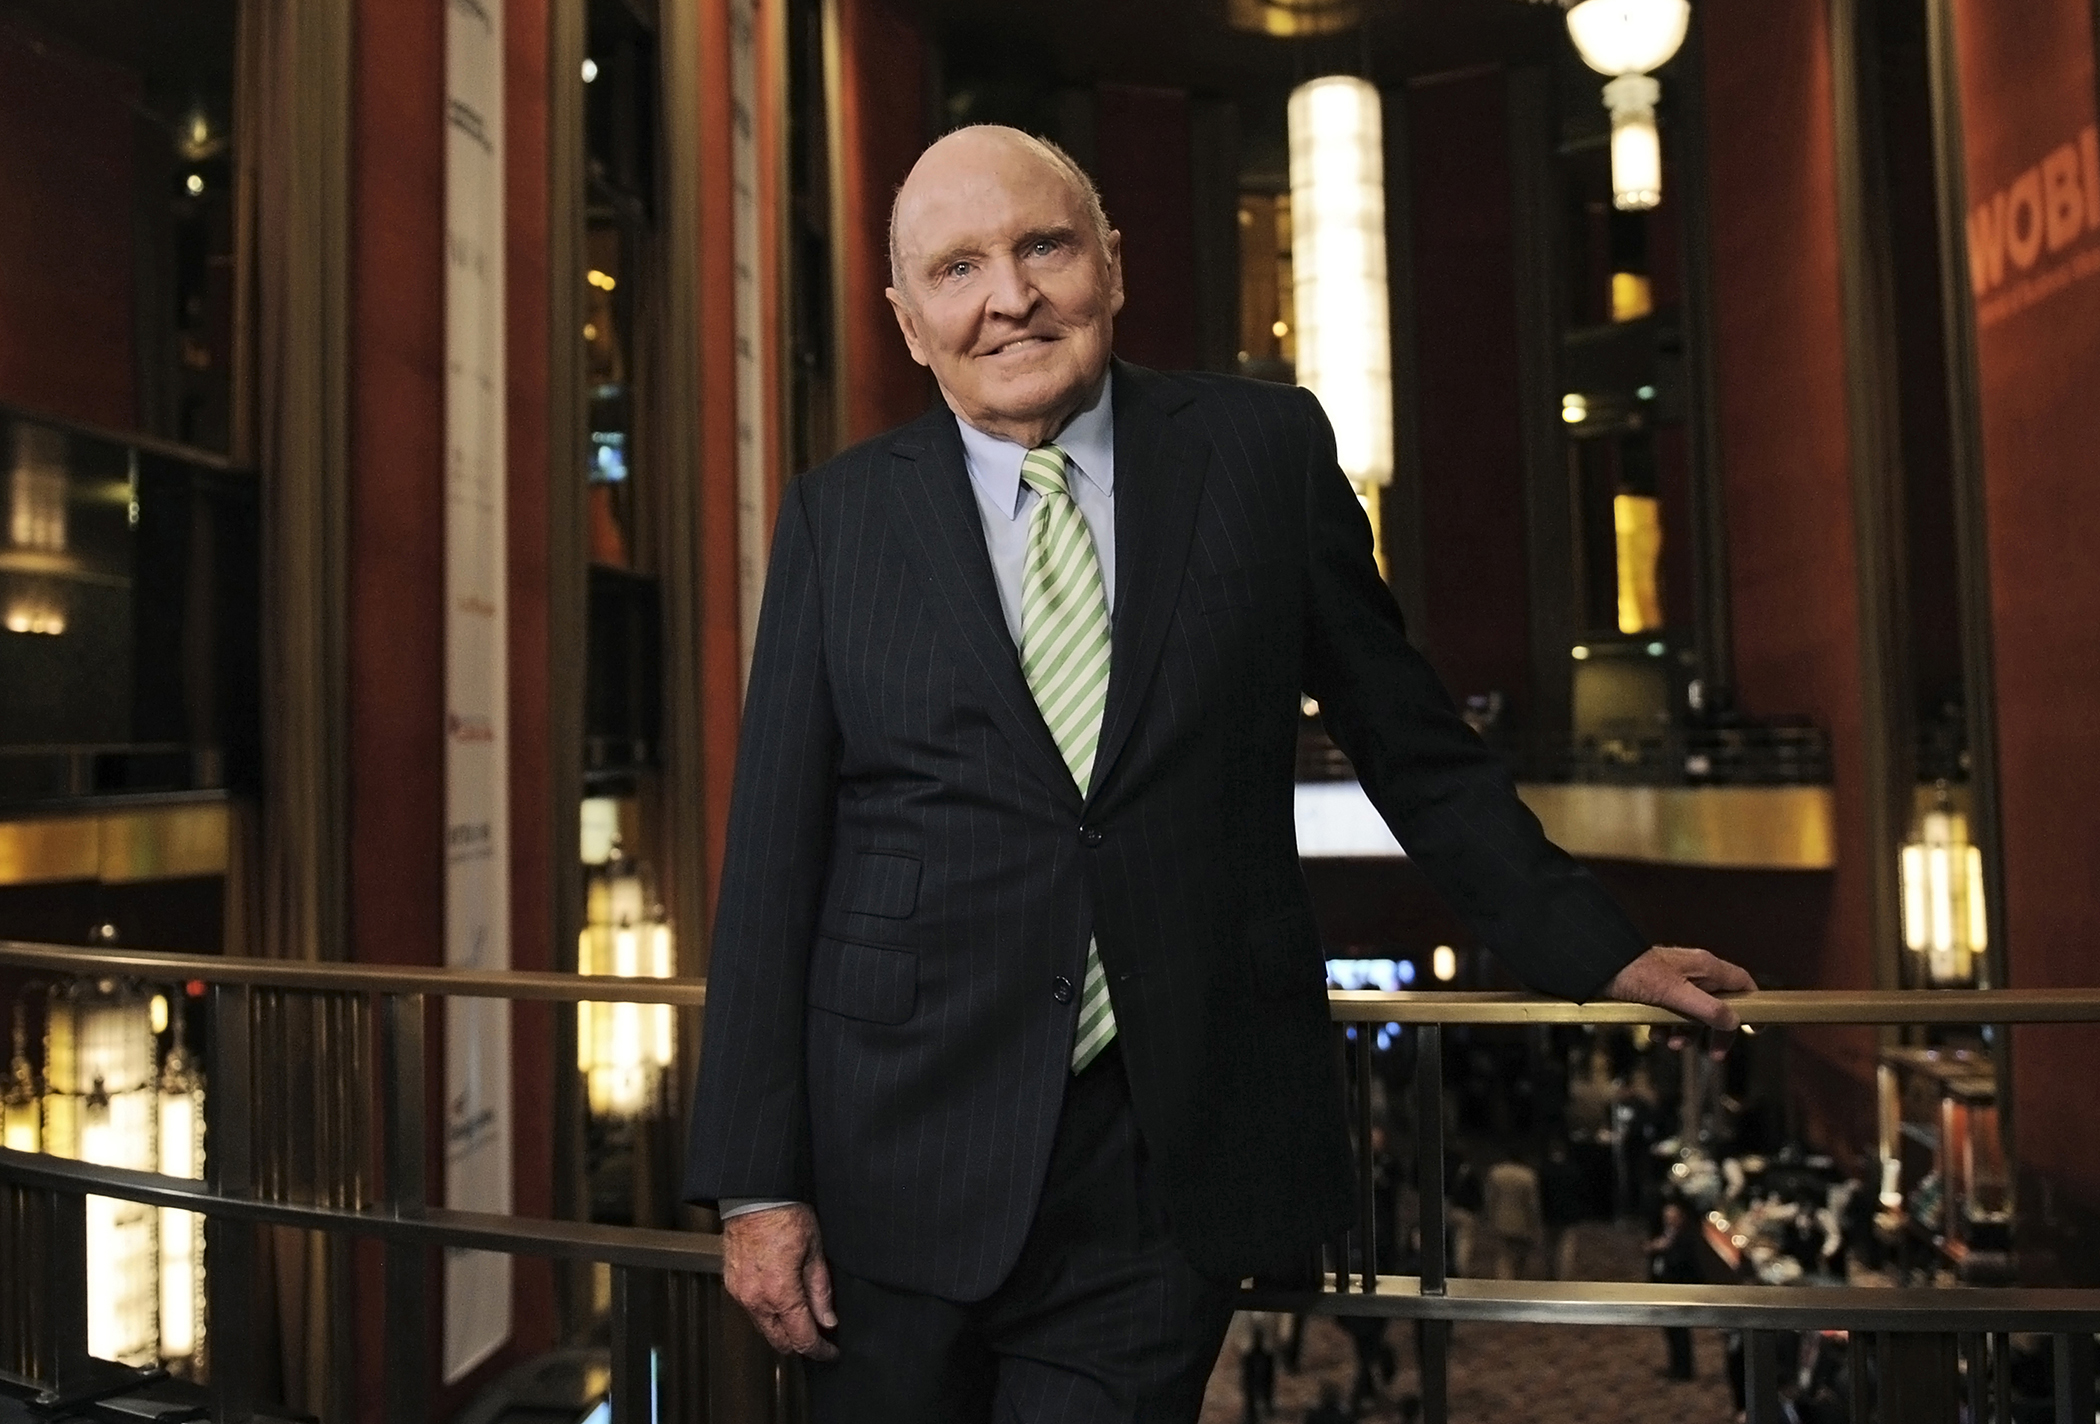 Jack Welch, former chief executive officer of General Electric Co., stands for a photograph at the World Business Forum in New York, on Oct. 2, 2013.